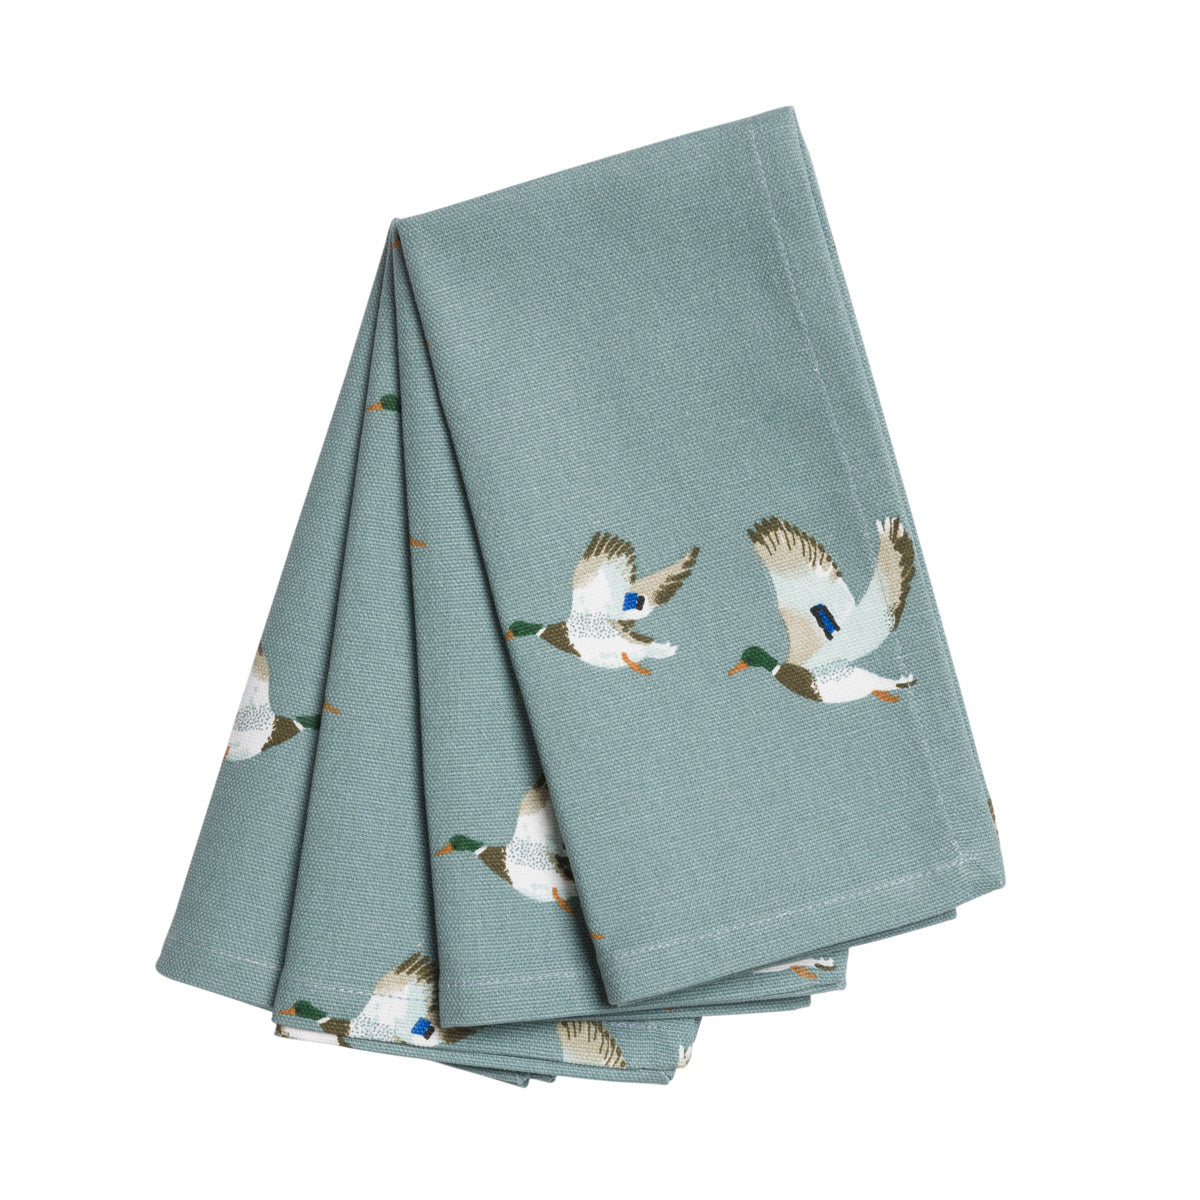 Ducks Napkins (Set of 4) by Sophie Allport